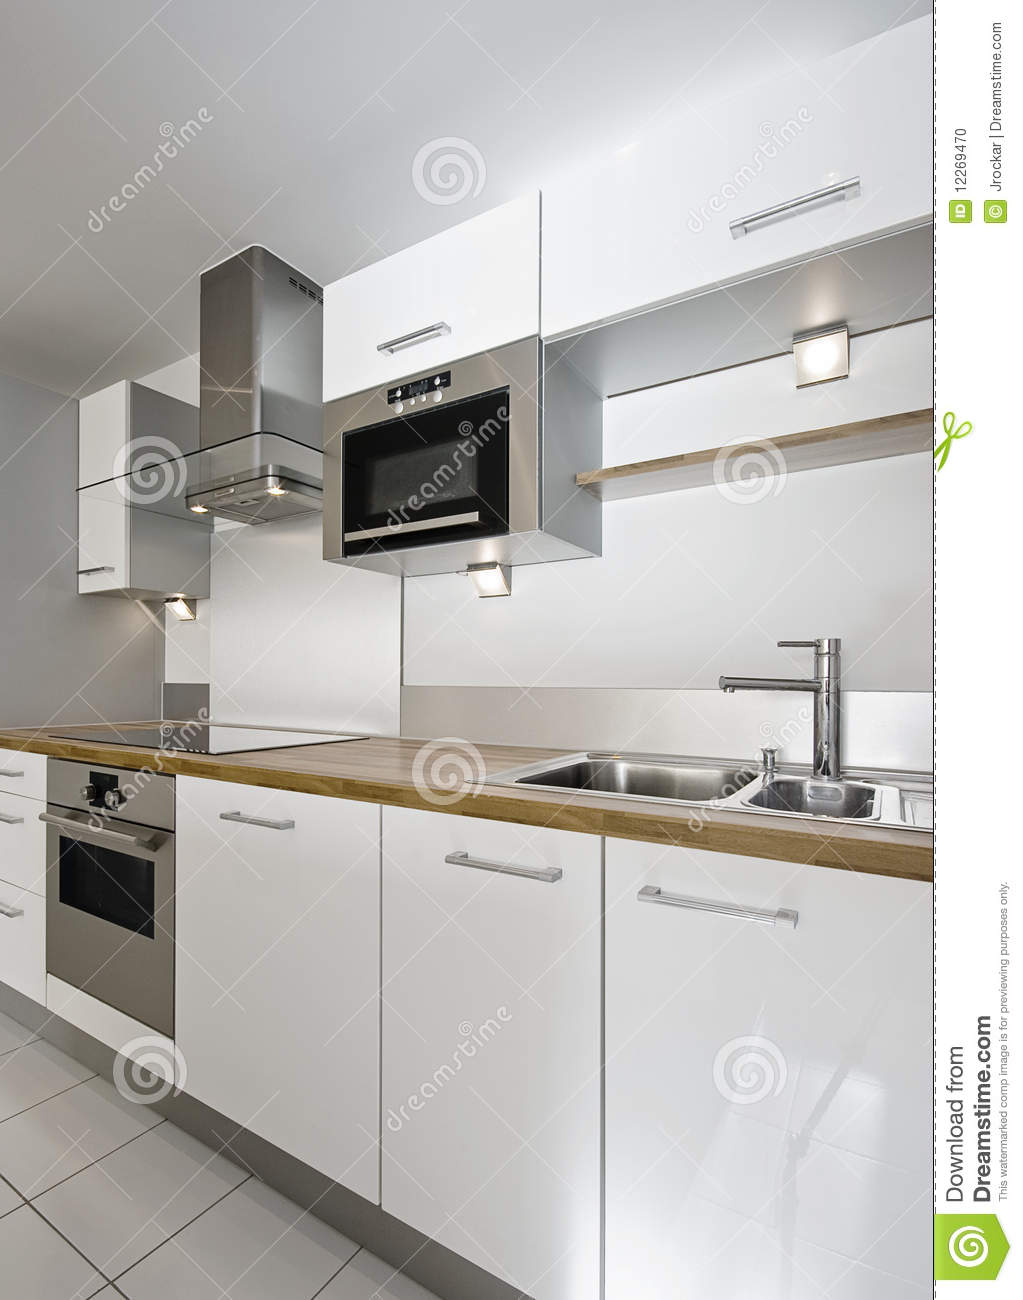 Home This Is Kitchen Furniture Ideas For Modern Home Interior Design